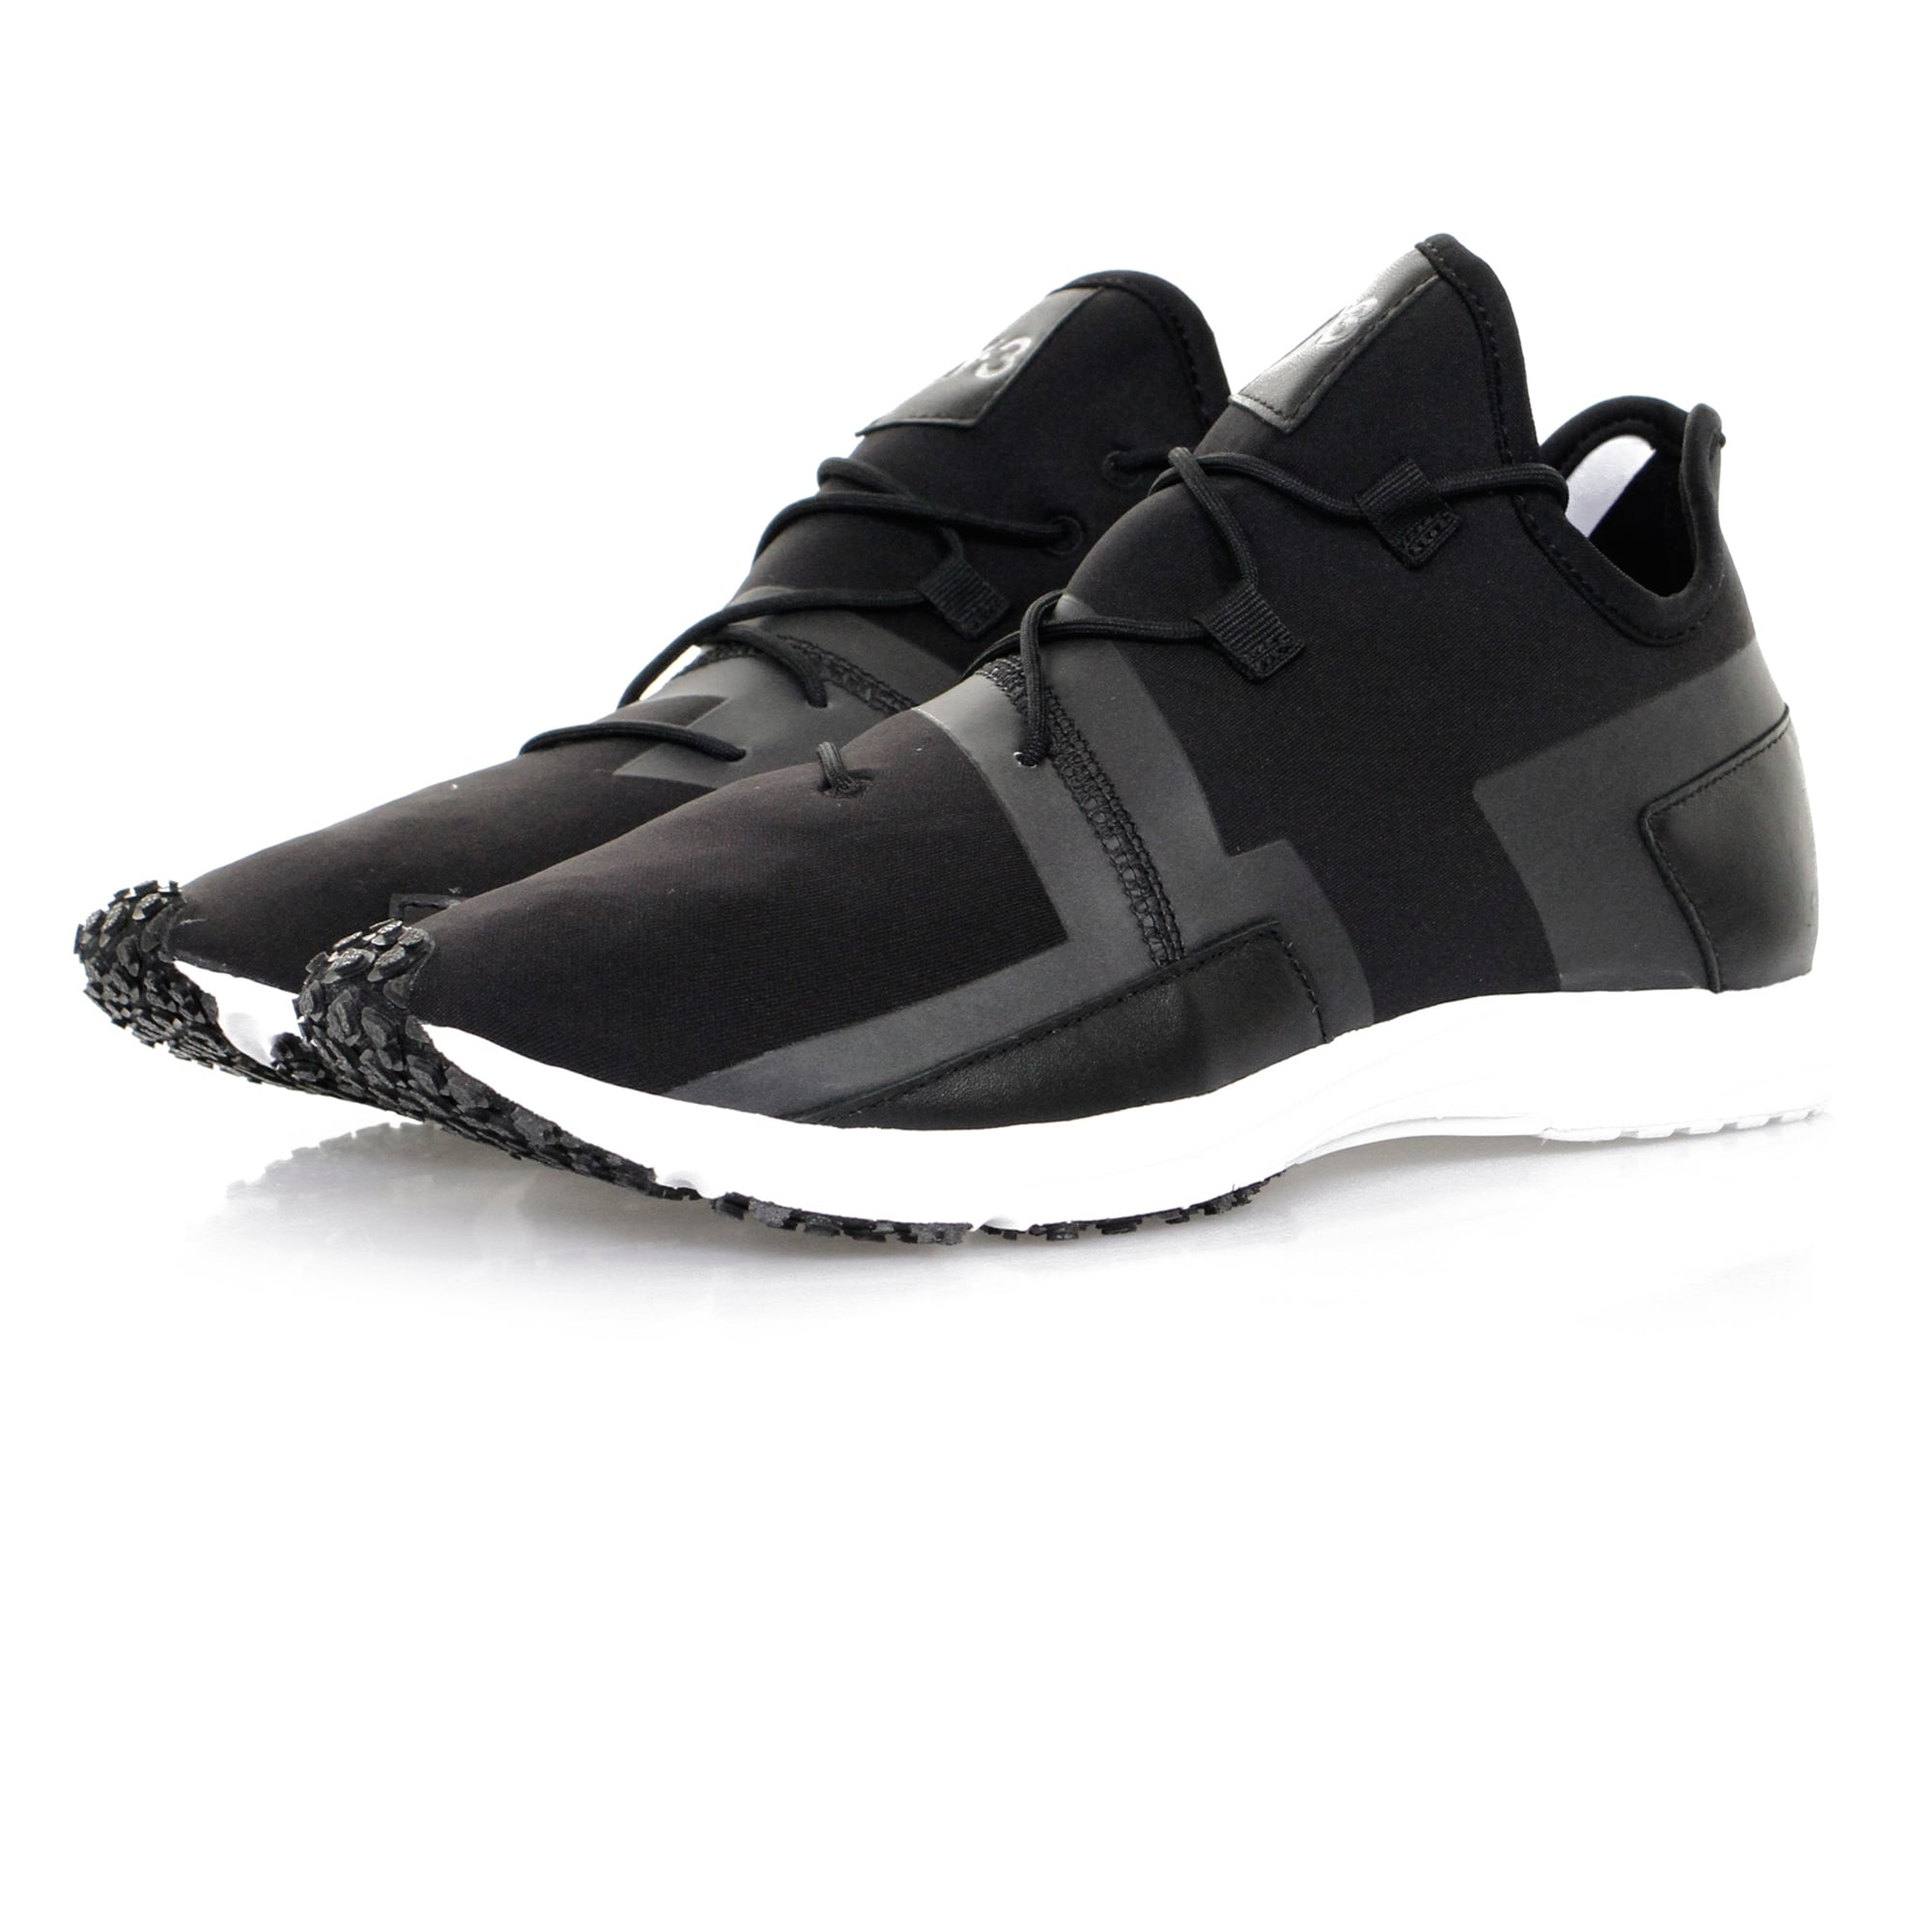 585c5f76895a Buy adidas y3 mens shoes   OFF62% Discounted